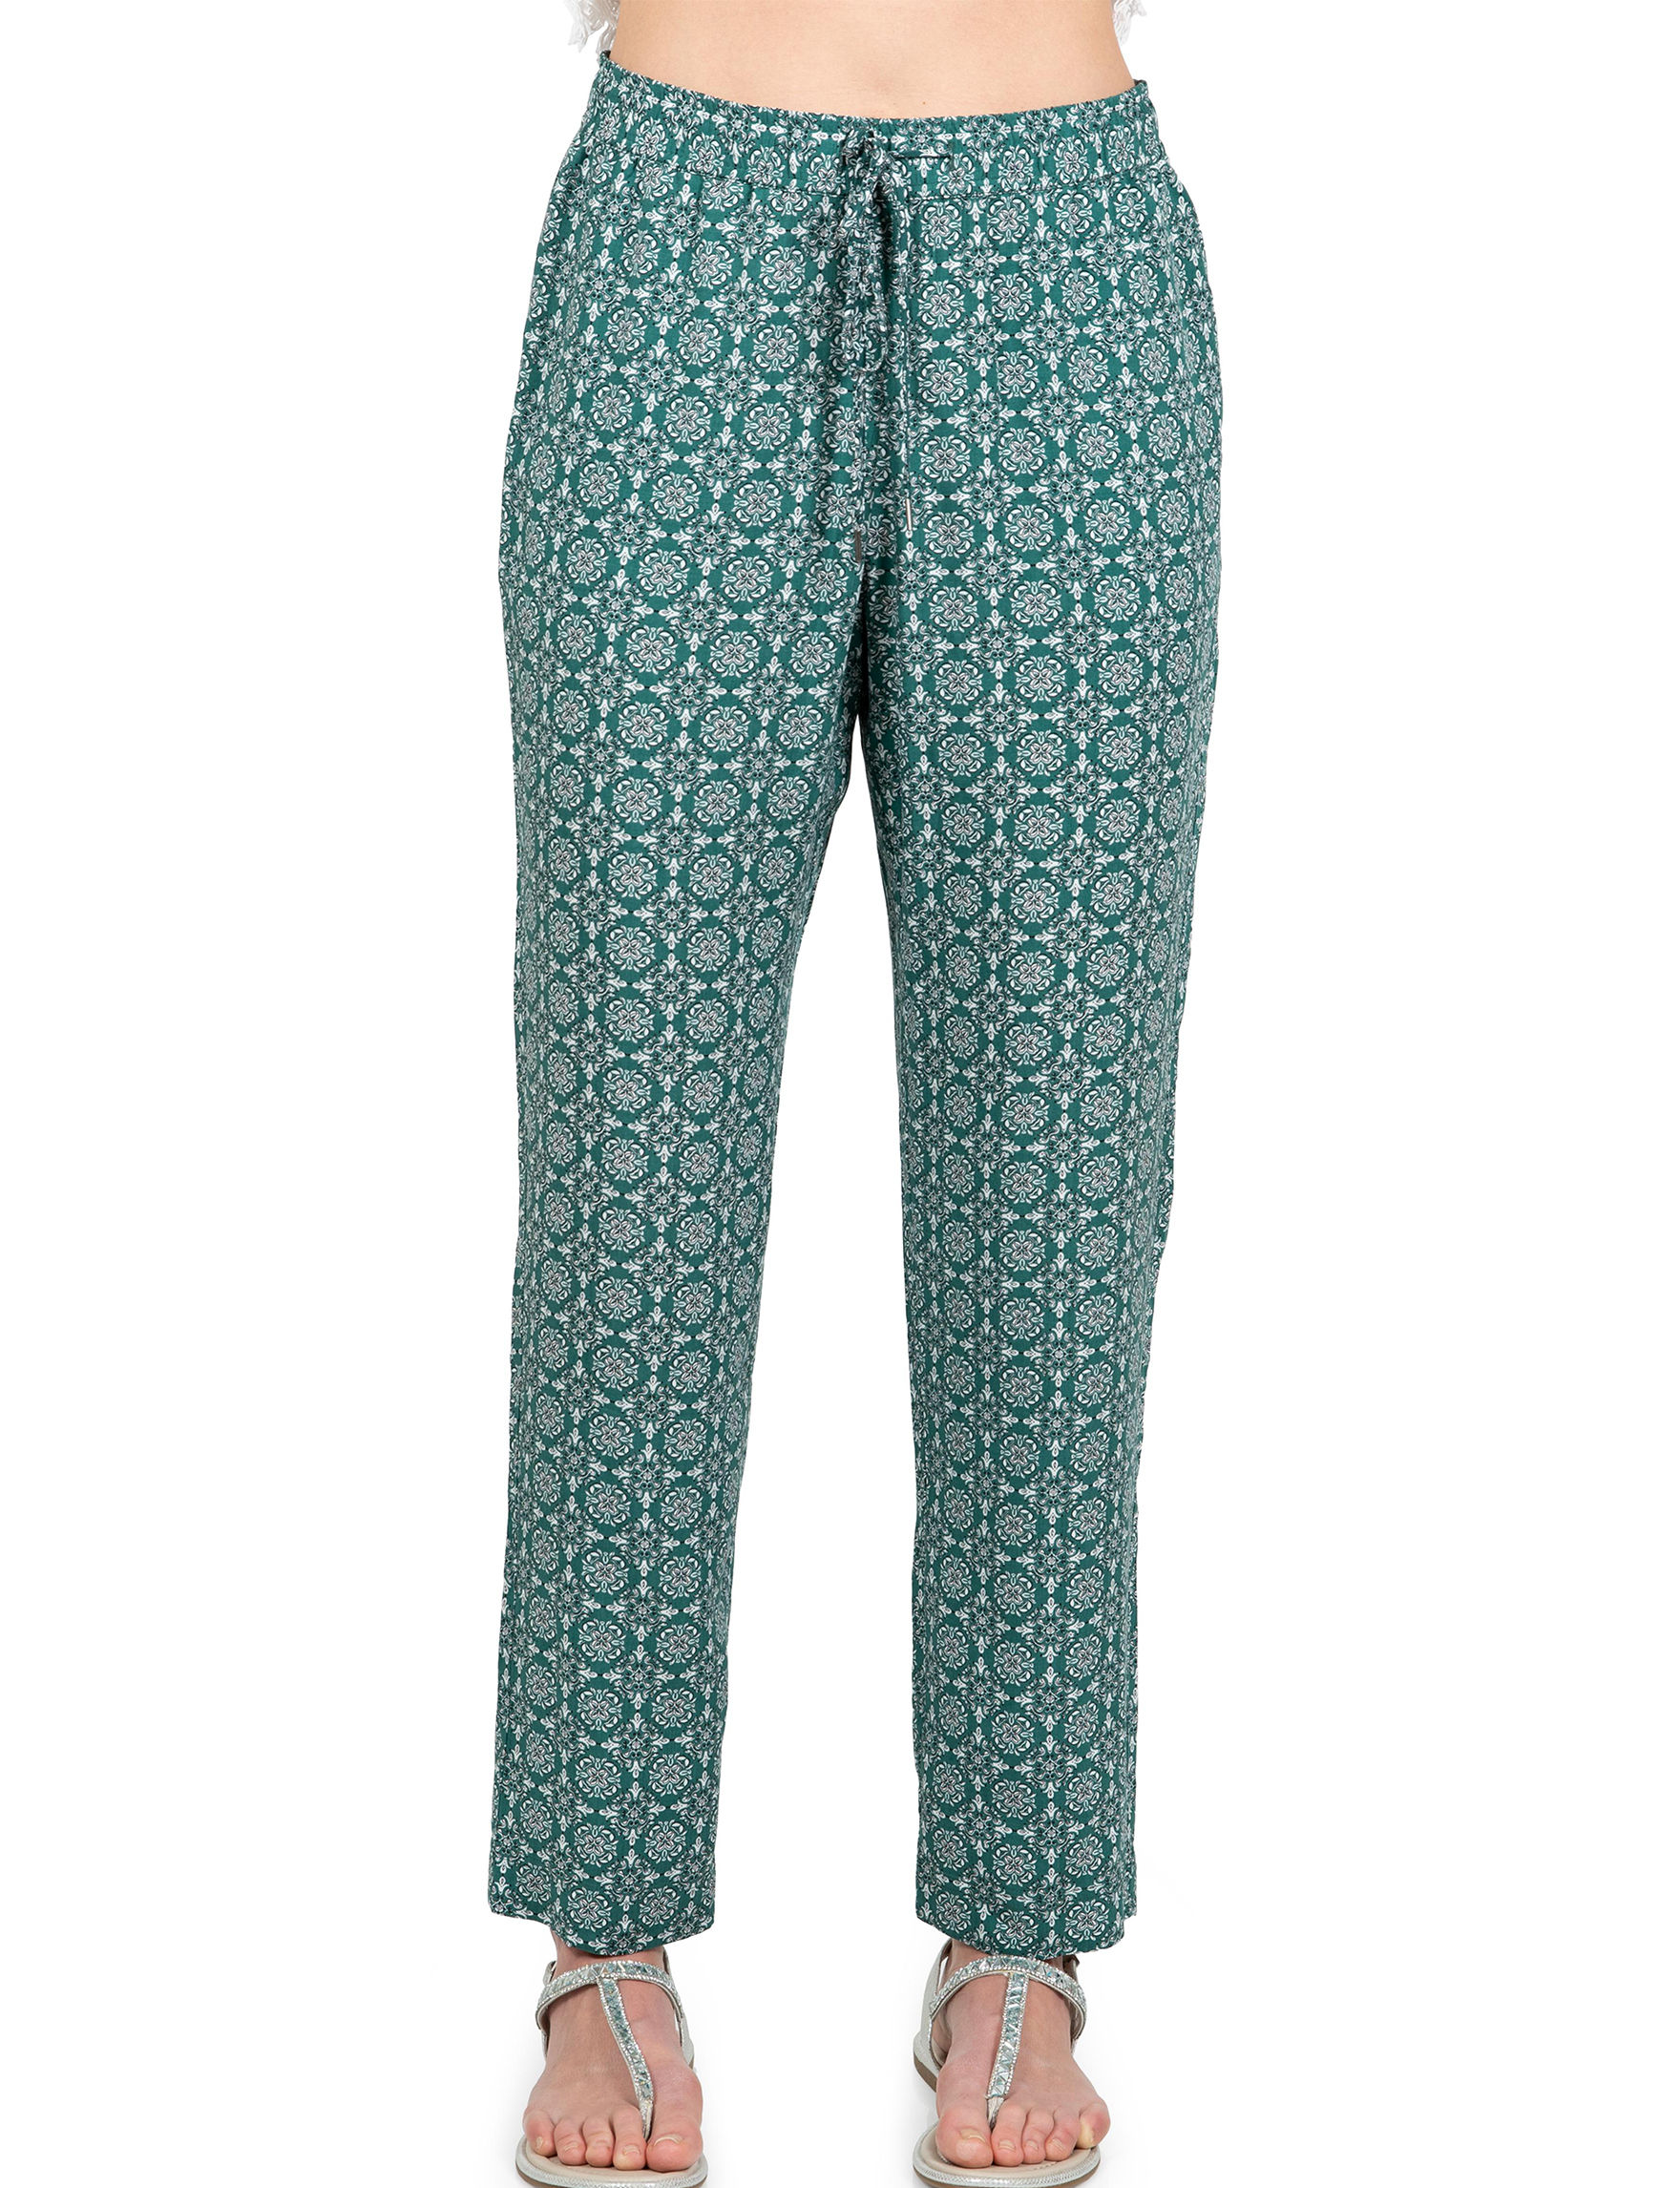 Skyes The Limit Green Multi Soft Pants Straight